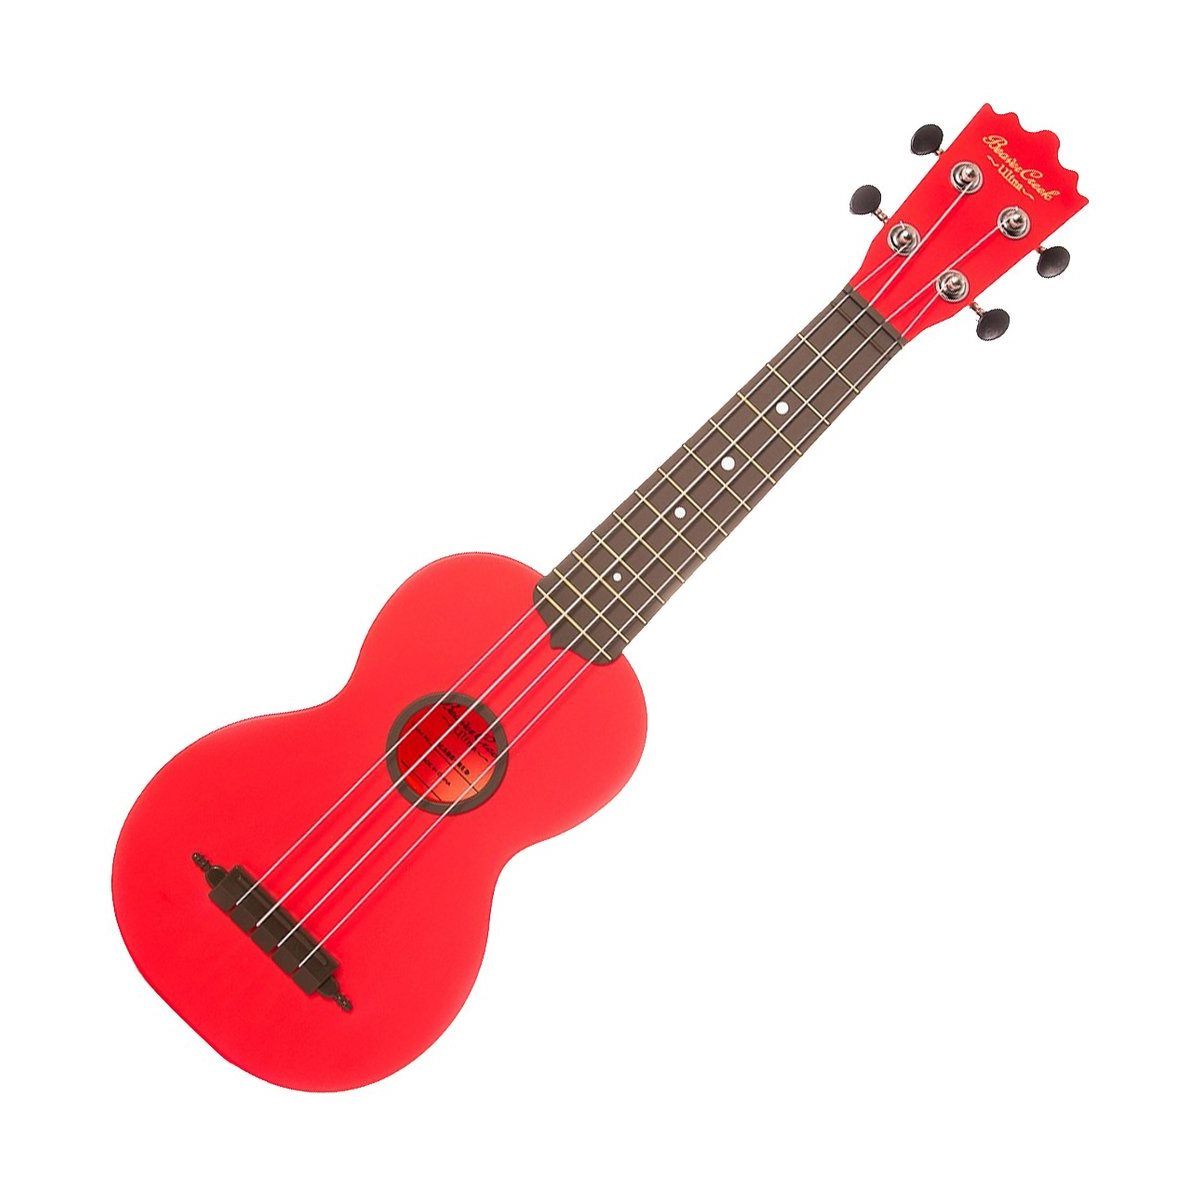 BEAVER CREEK - Ulina Soprano Ukulele - RED